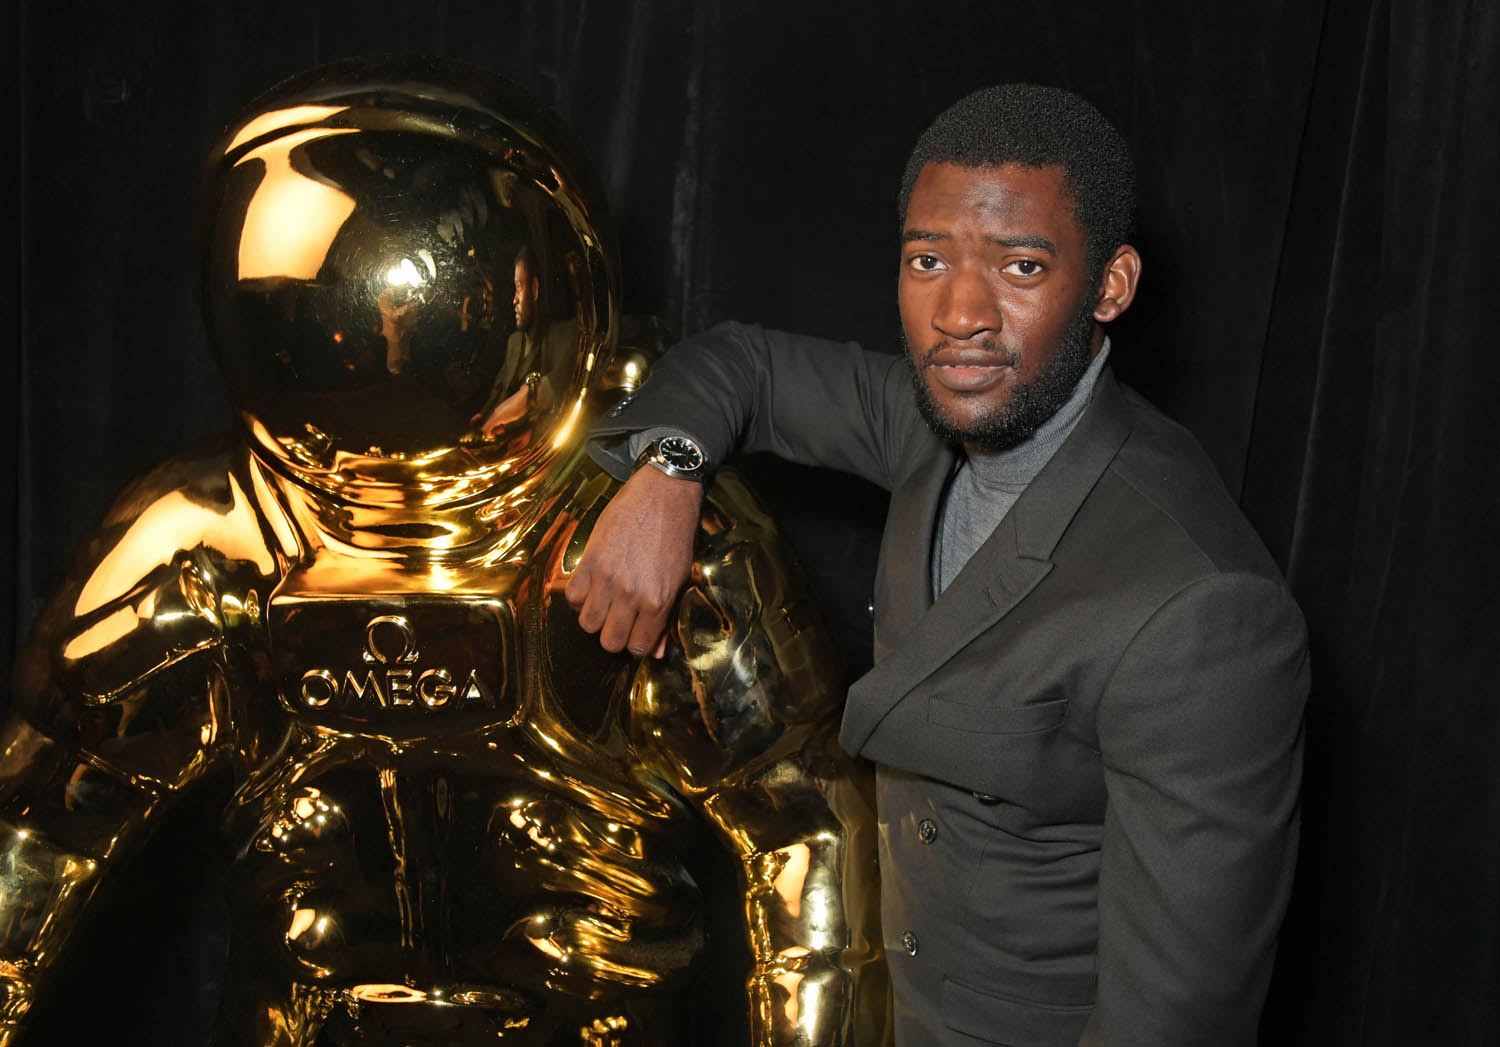 LONDON, ENGLAND - JULY 11: Malachi Kirby attends an OMEGA dinner celebrating the 50th anniversary of the Moon Landing at Television Centre on July 11, 2019 in London, England. (Photo by David M. Benett/Dave Benett/Getty Images for OMEGA)